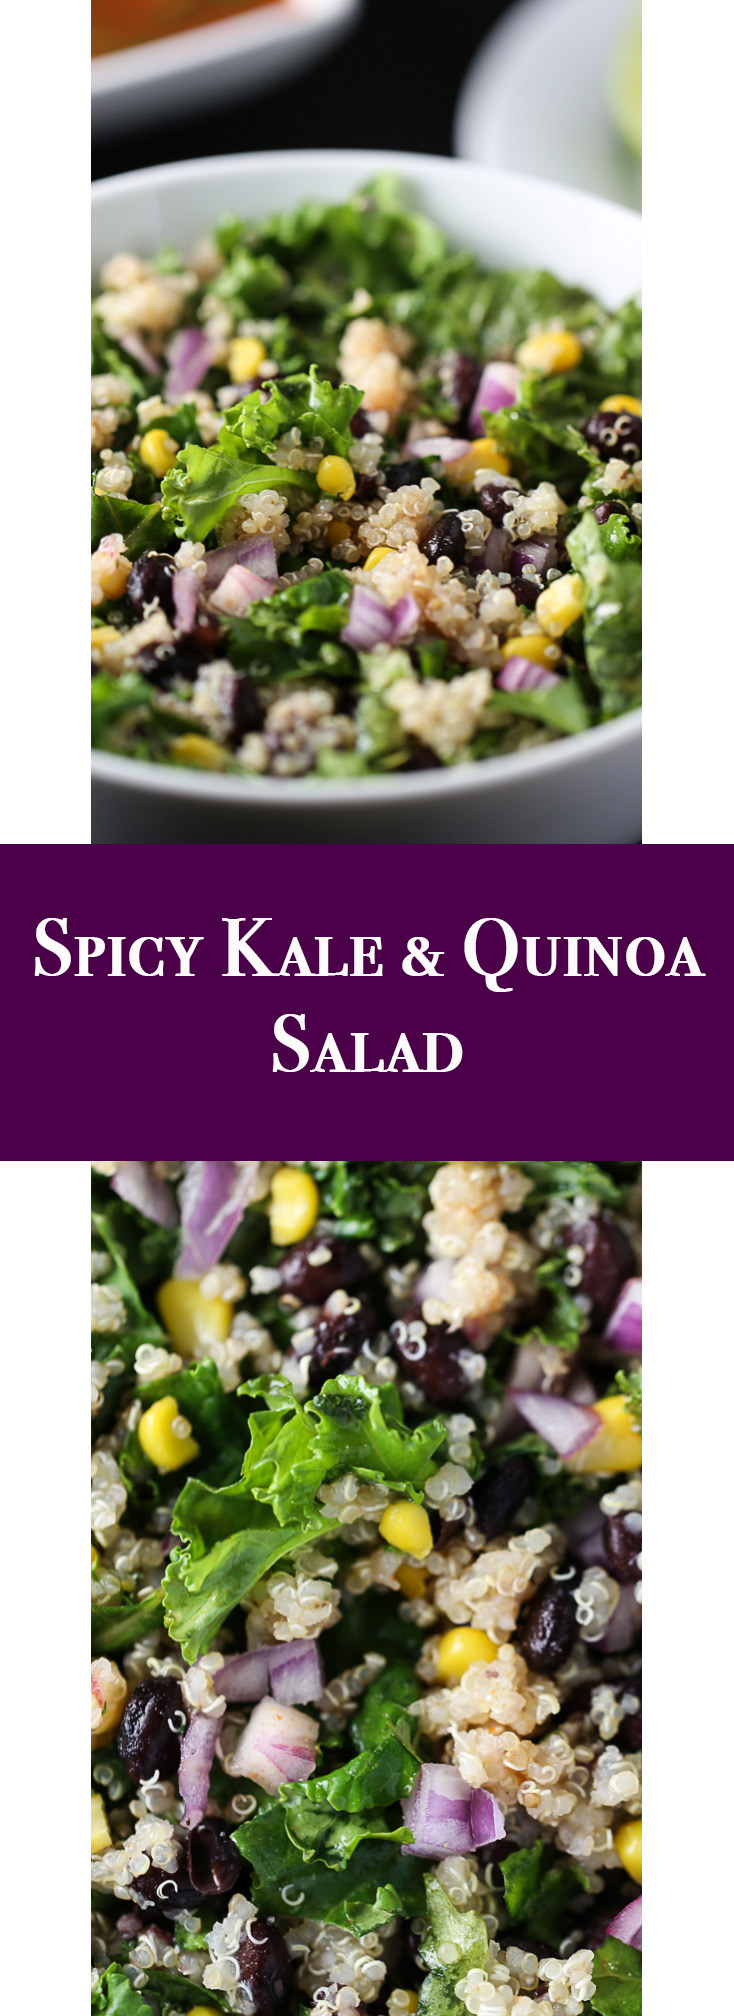 Spicy Kale & Quinoa Salad - So Good! So Healthy! So Spicy!